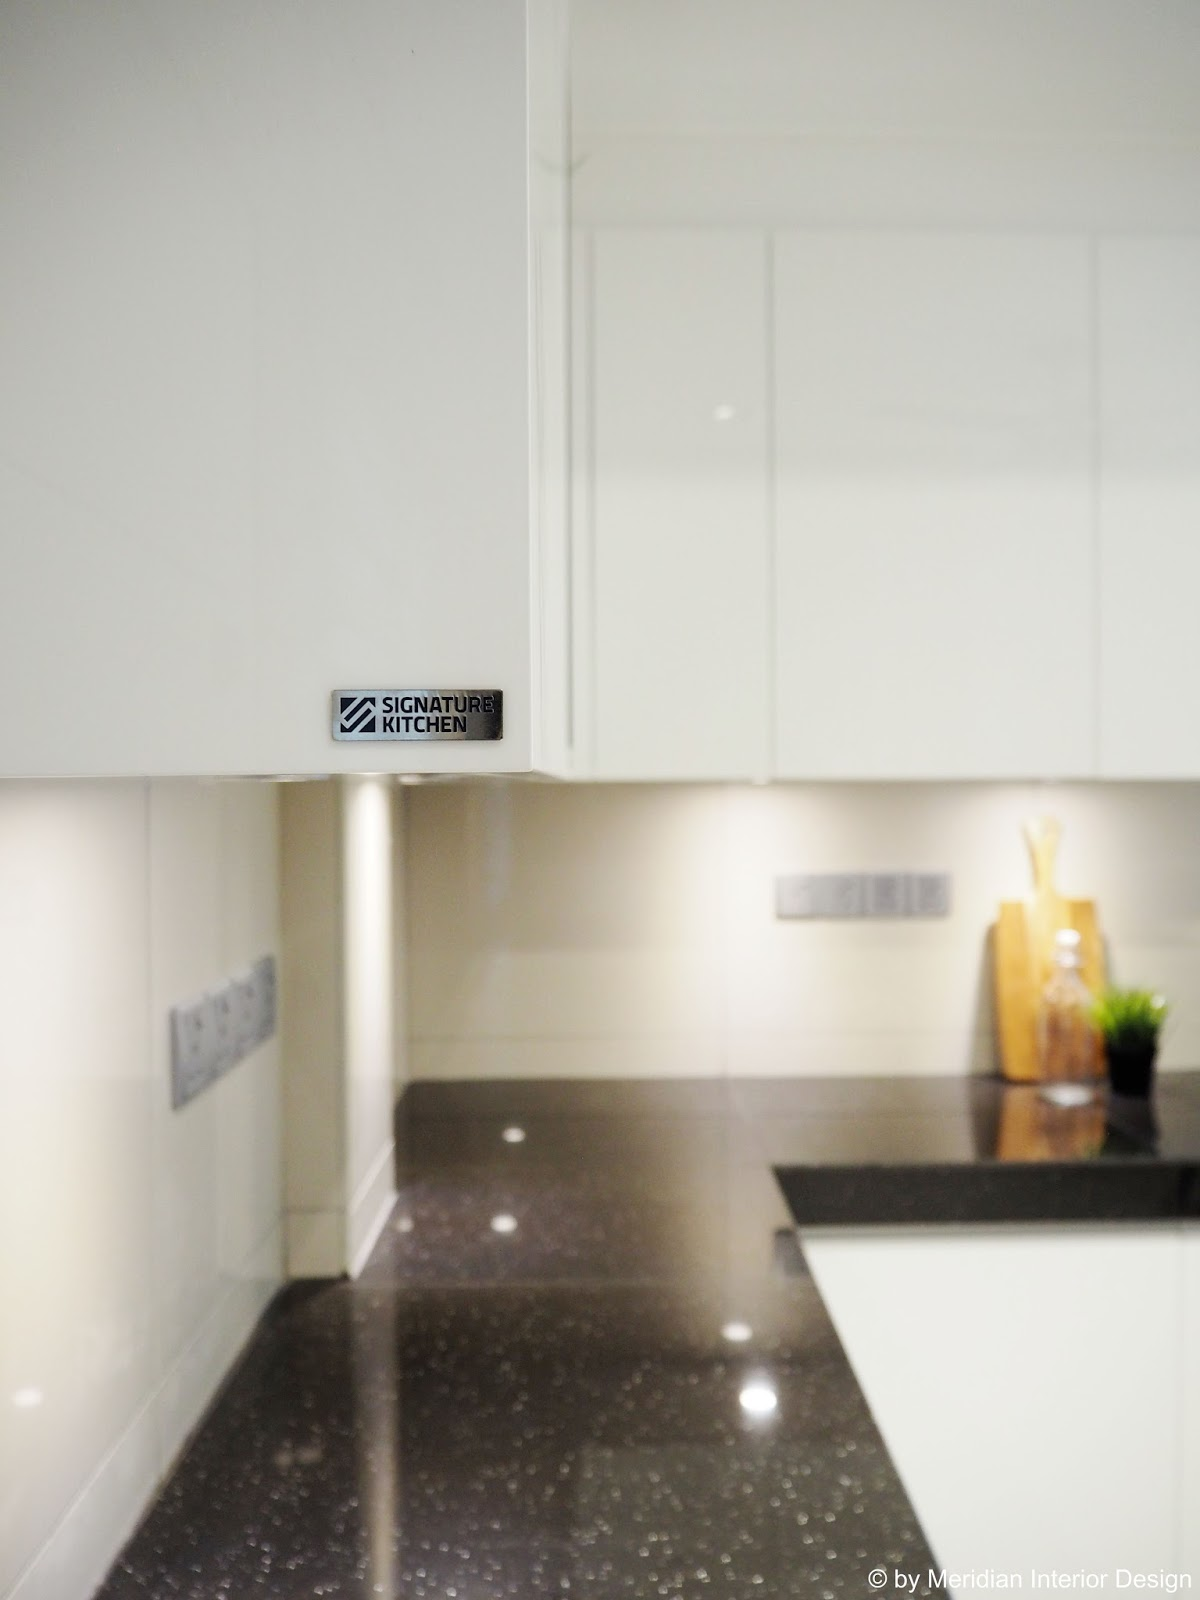 Quality Brand Kitchen Cabinets Single Handle Faucet With Side Spray Meridian Interior Design And In Kuala